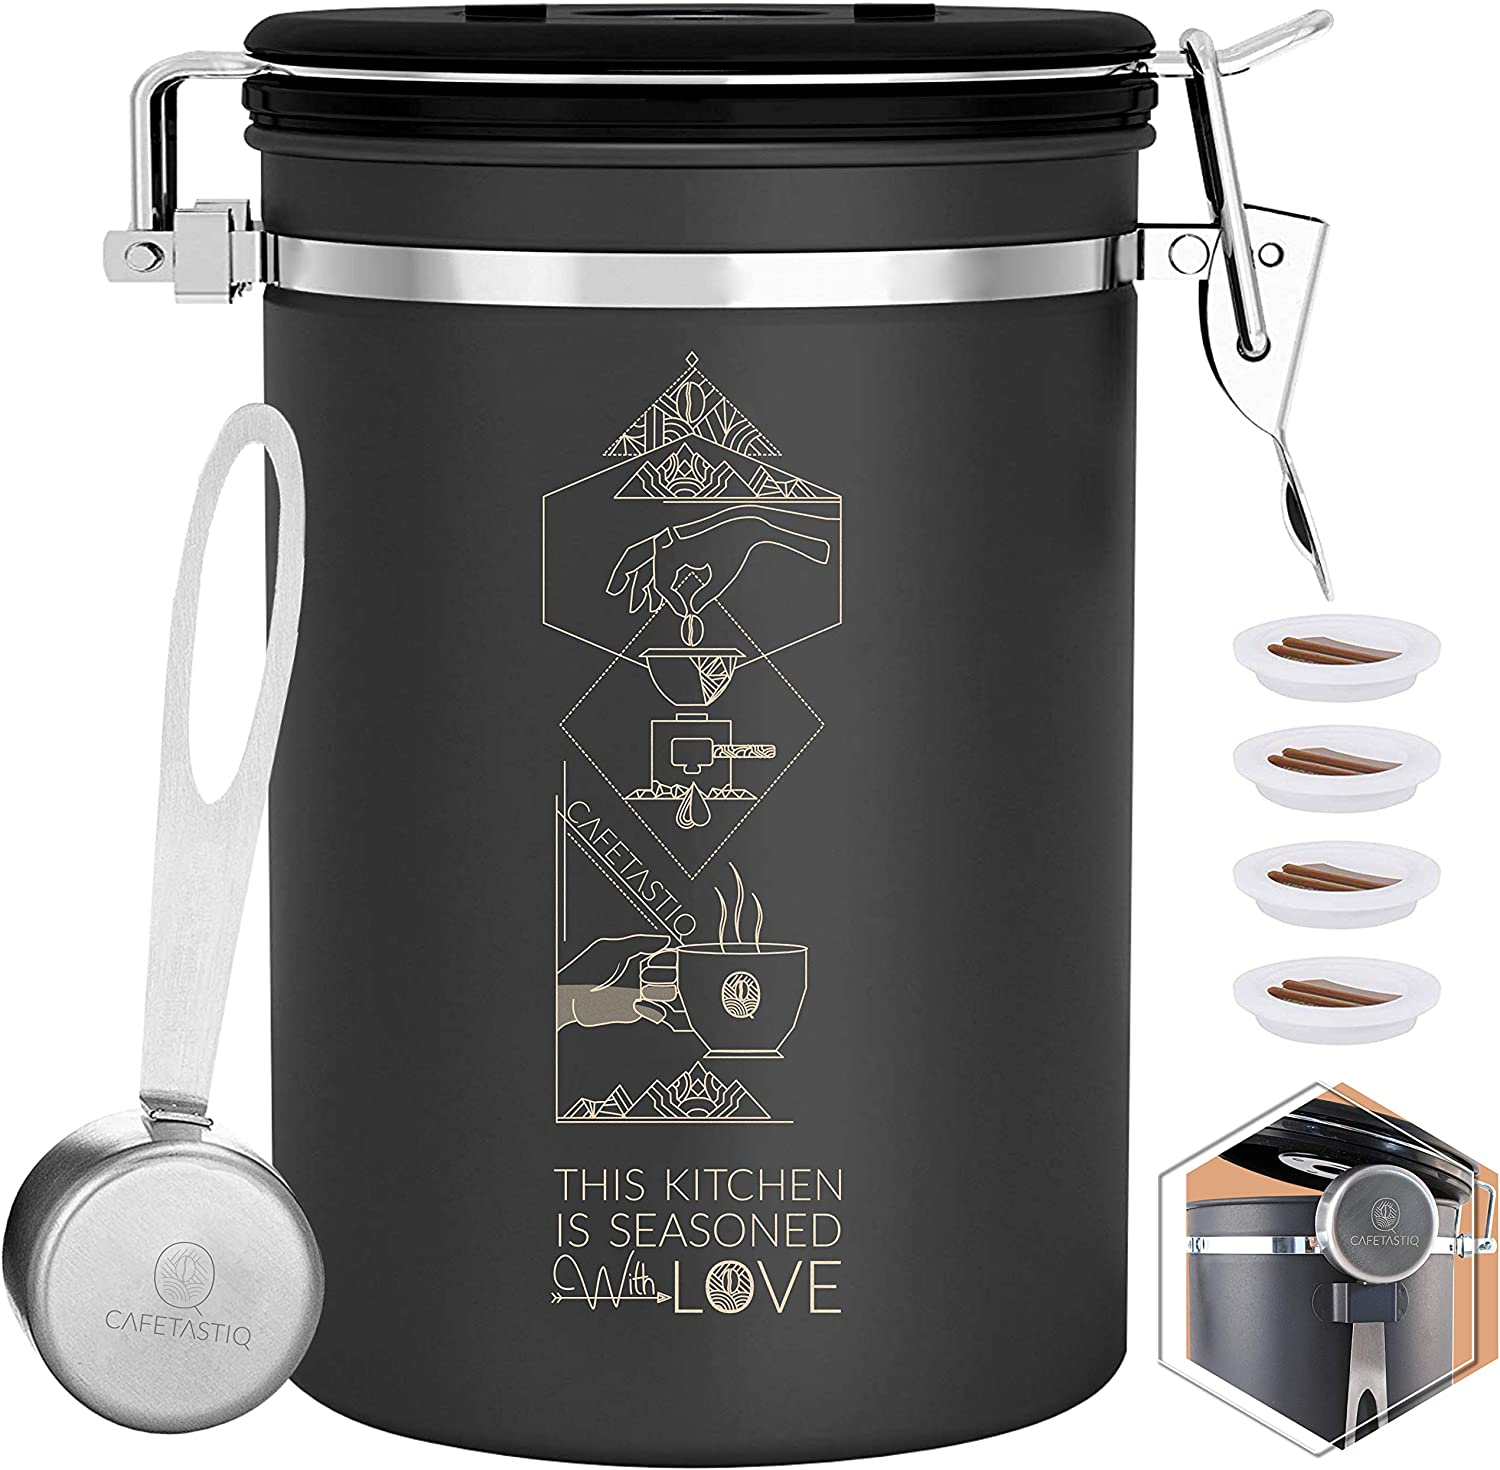 CafetastiQ Coffee Canister - Large 22oz Airtight Coffee Container for Storage with Date Dial and Release Valve - Accessories Scoop (Seasoned with Love)